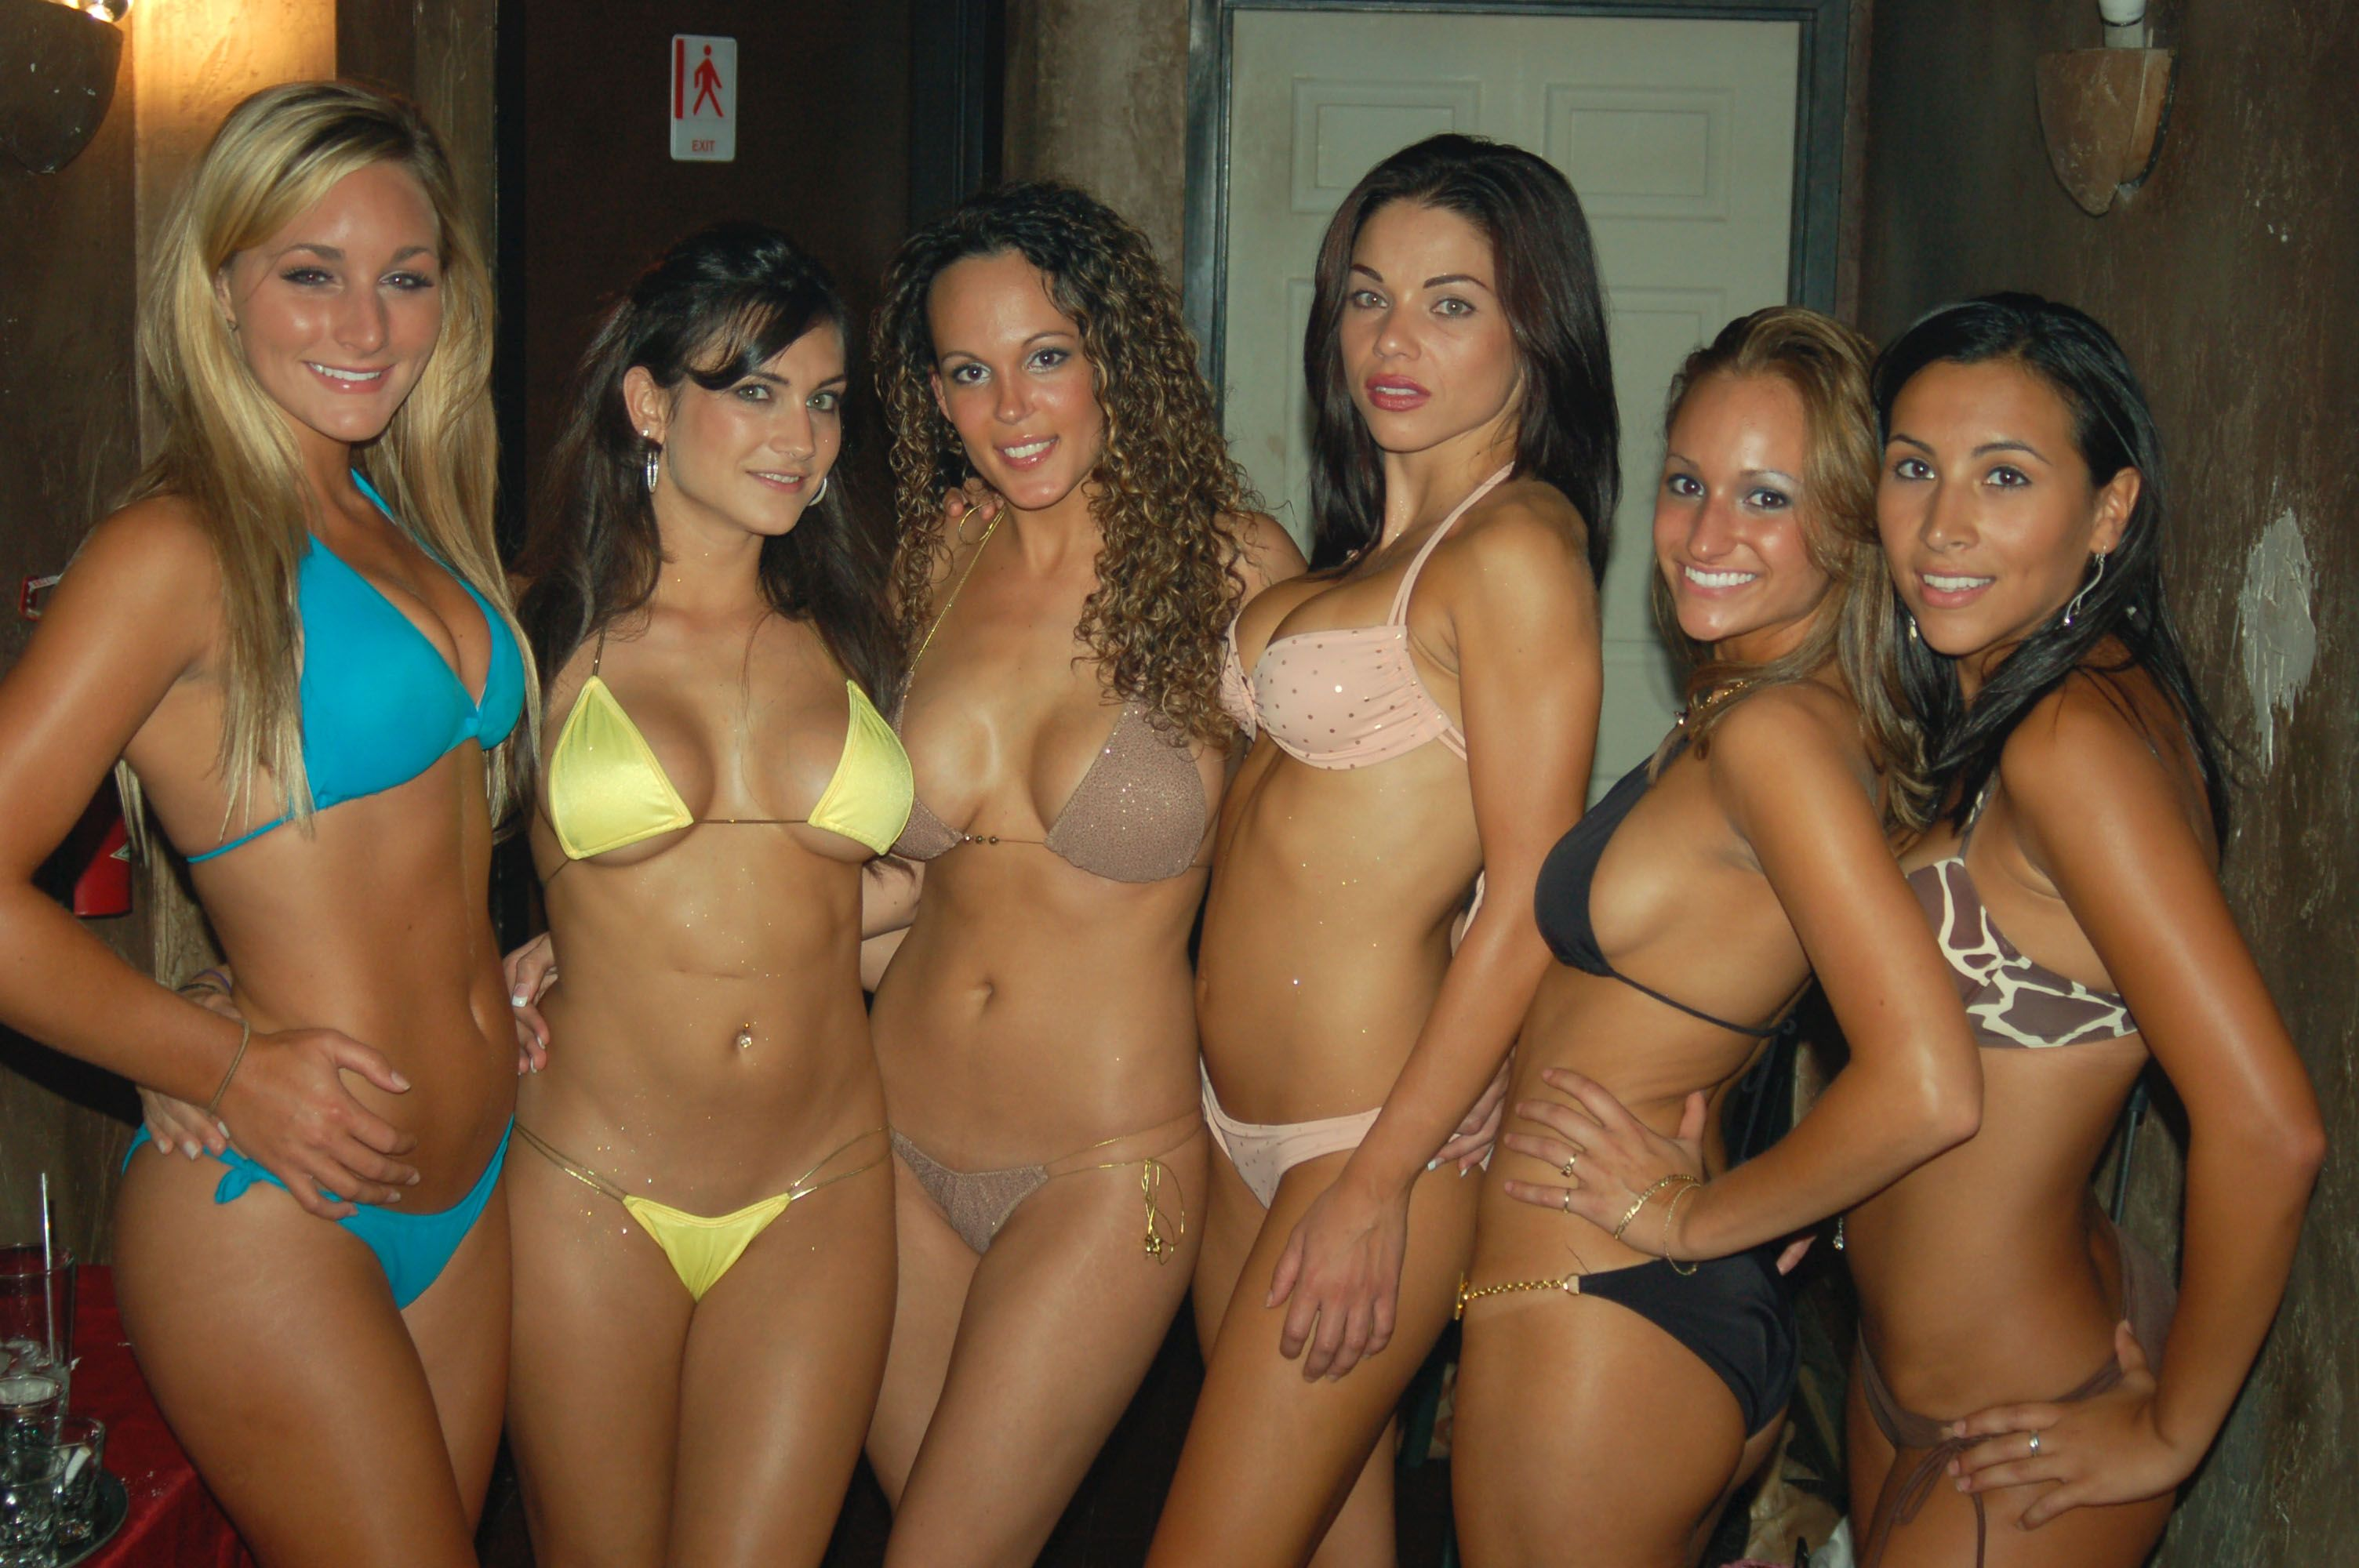 Group of Girls, Bikini, Bikinis | Bikinis, Swimwear, Types of body ...